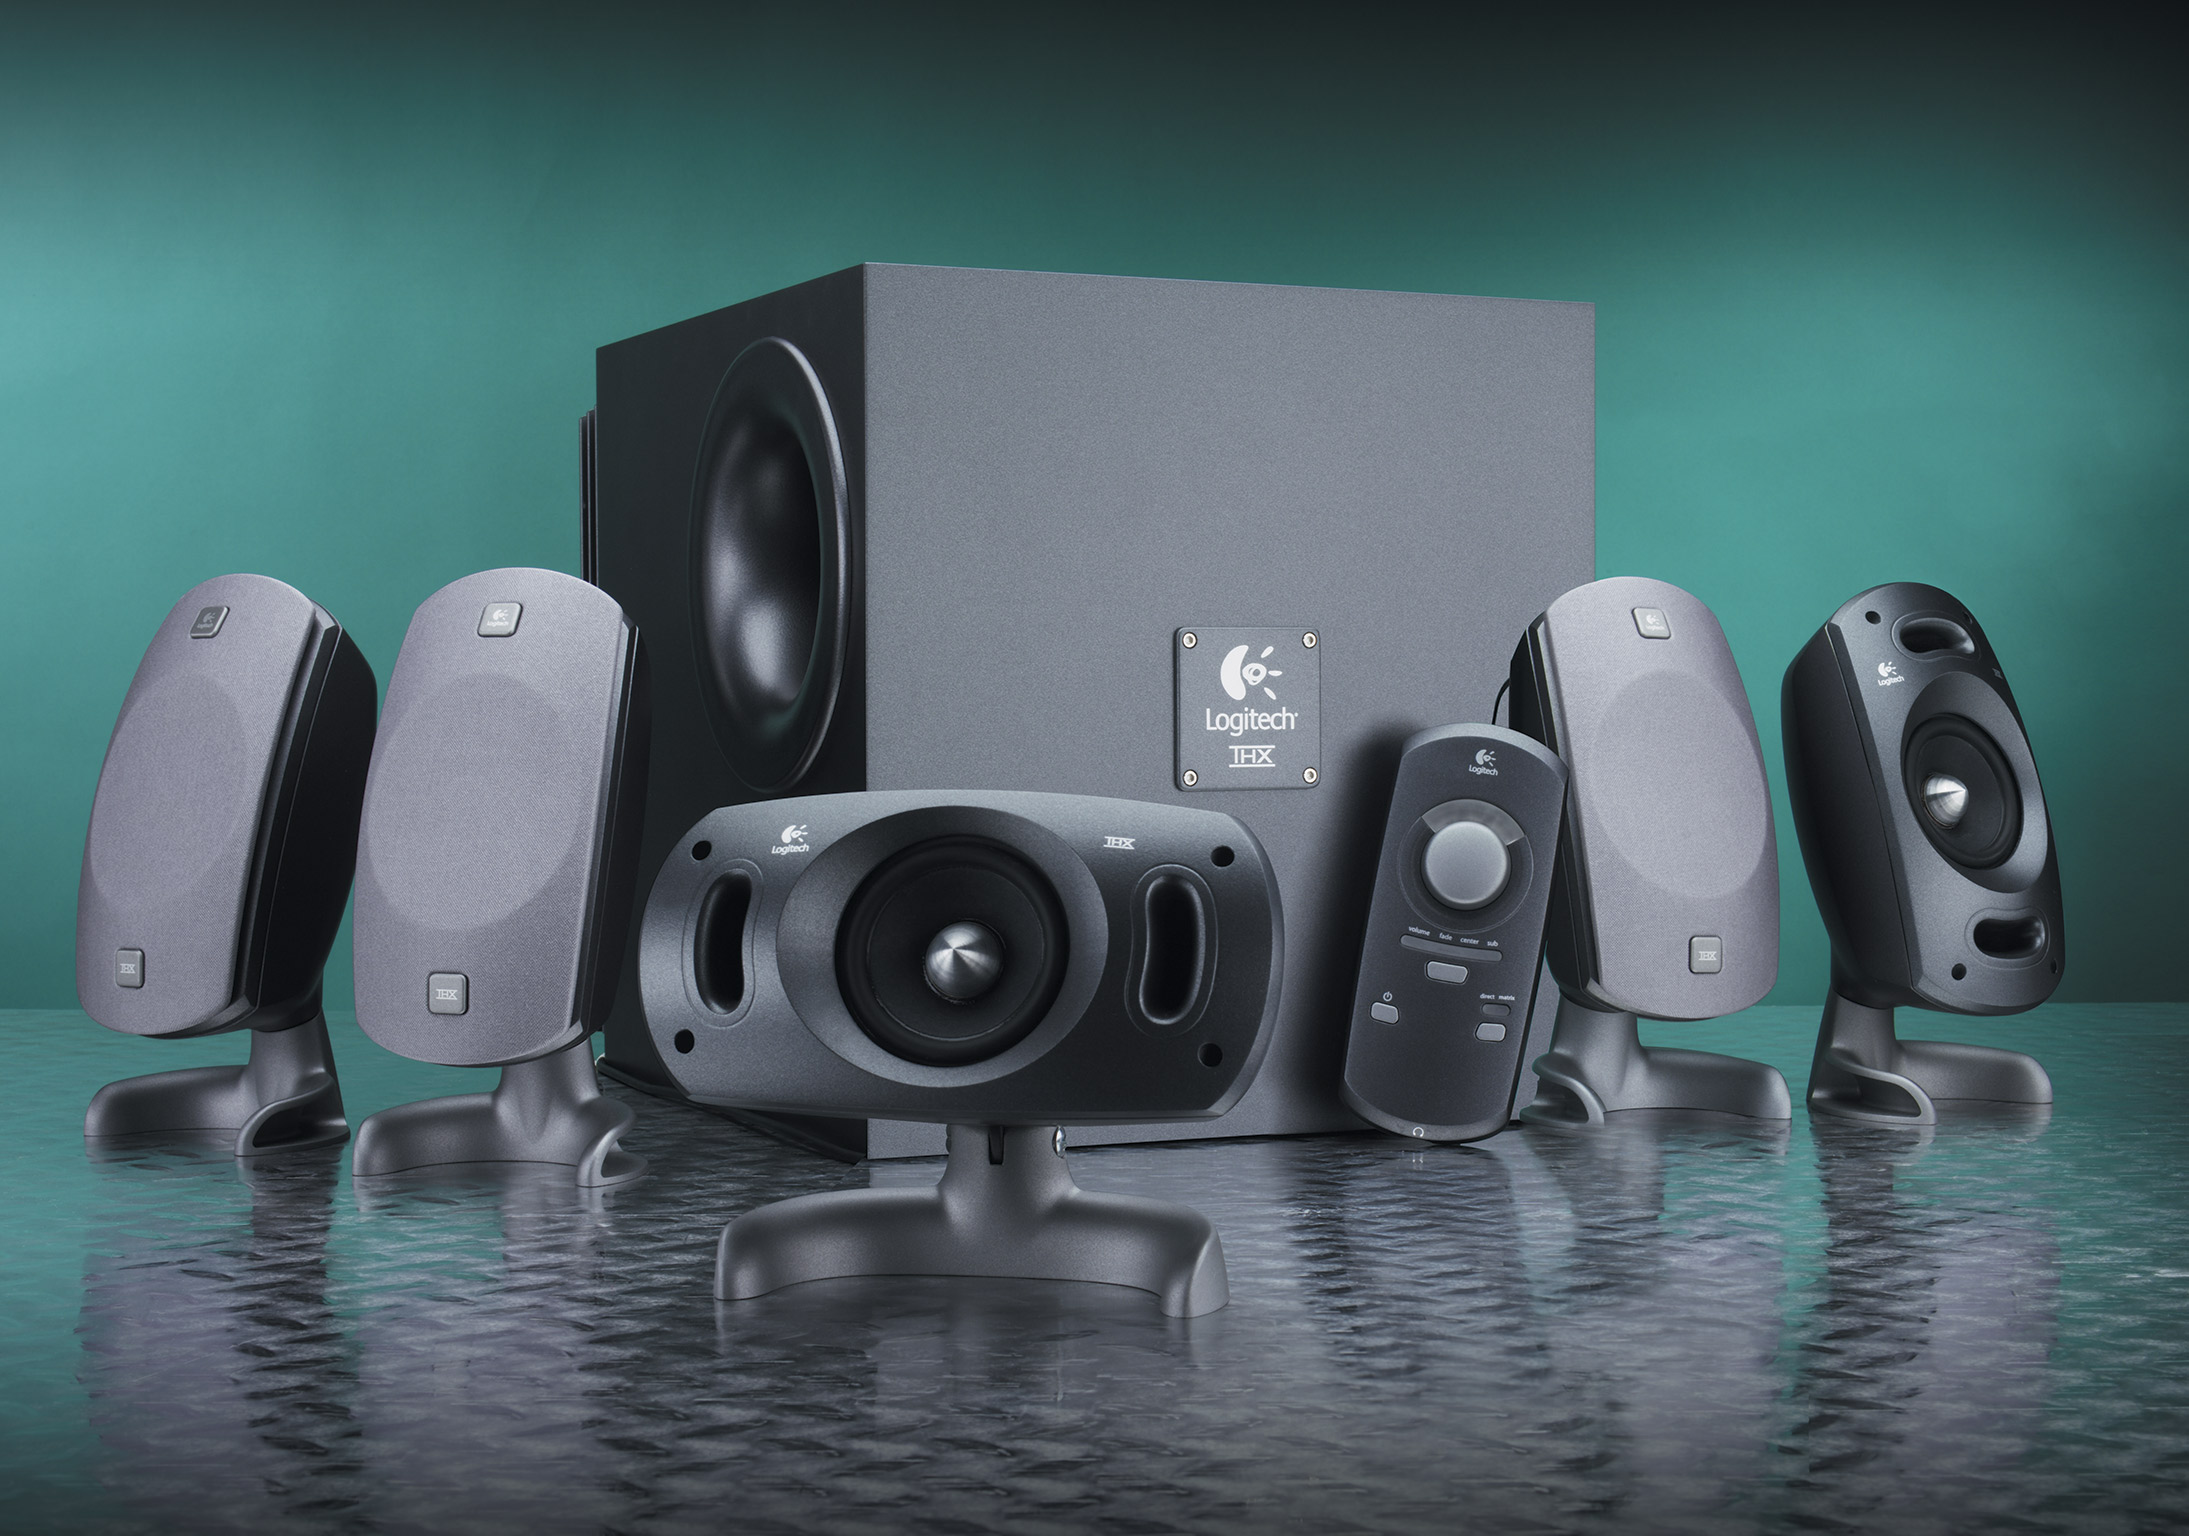 Logitech products showcase